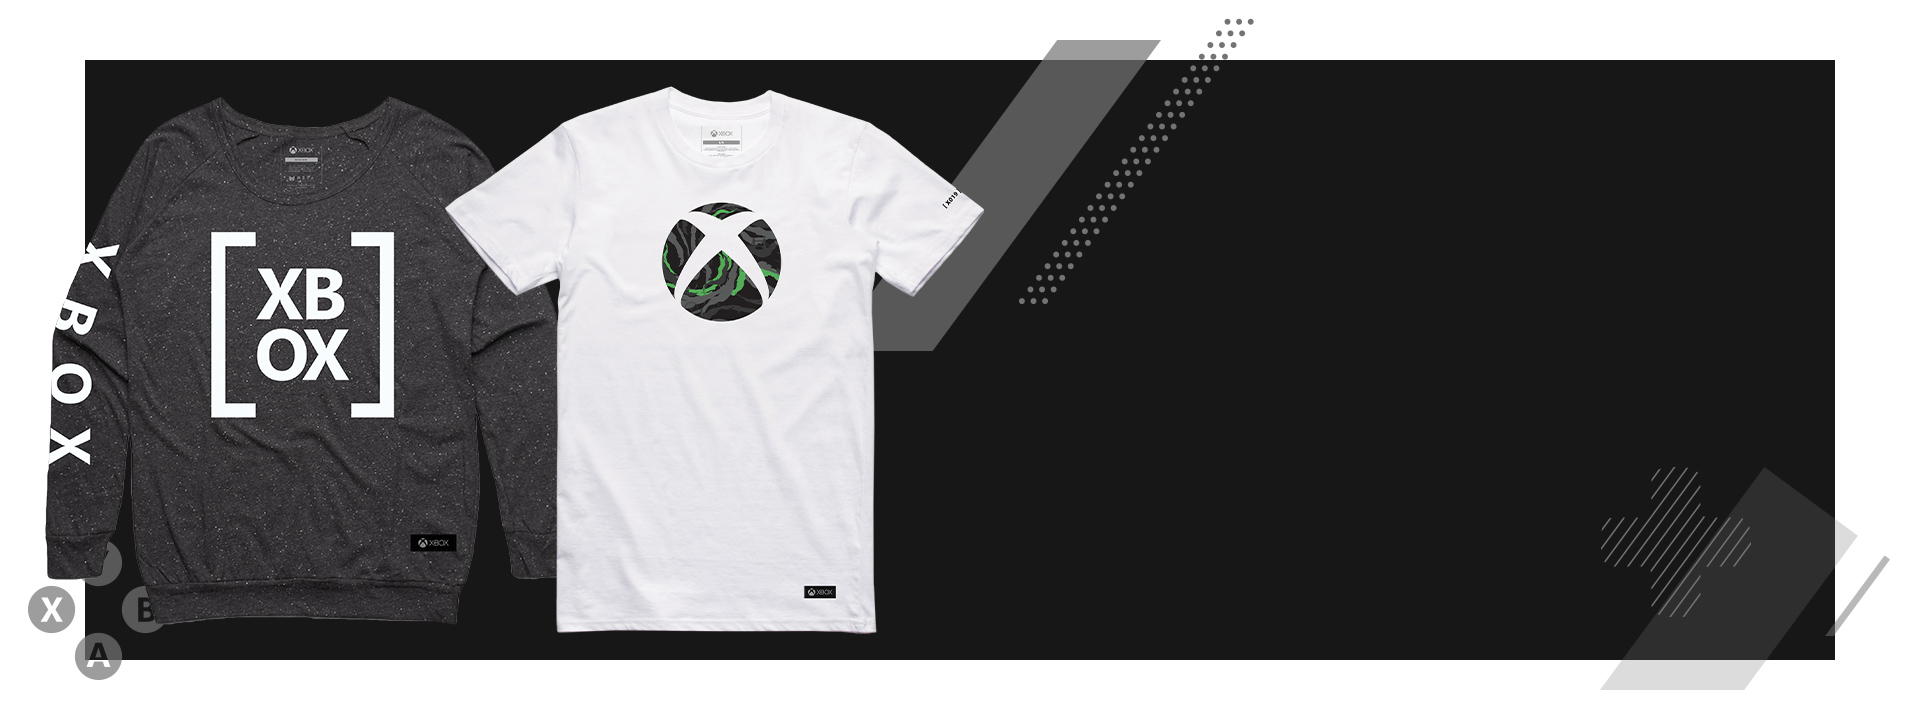 Xbox sweatshirt and t-shirt on black background with graphics overlaid